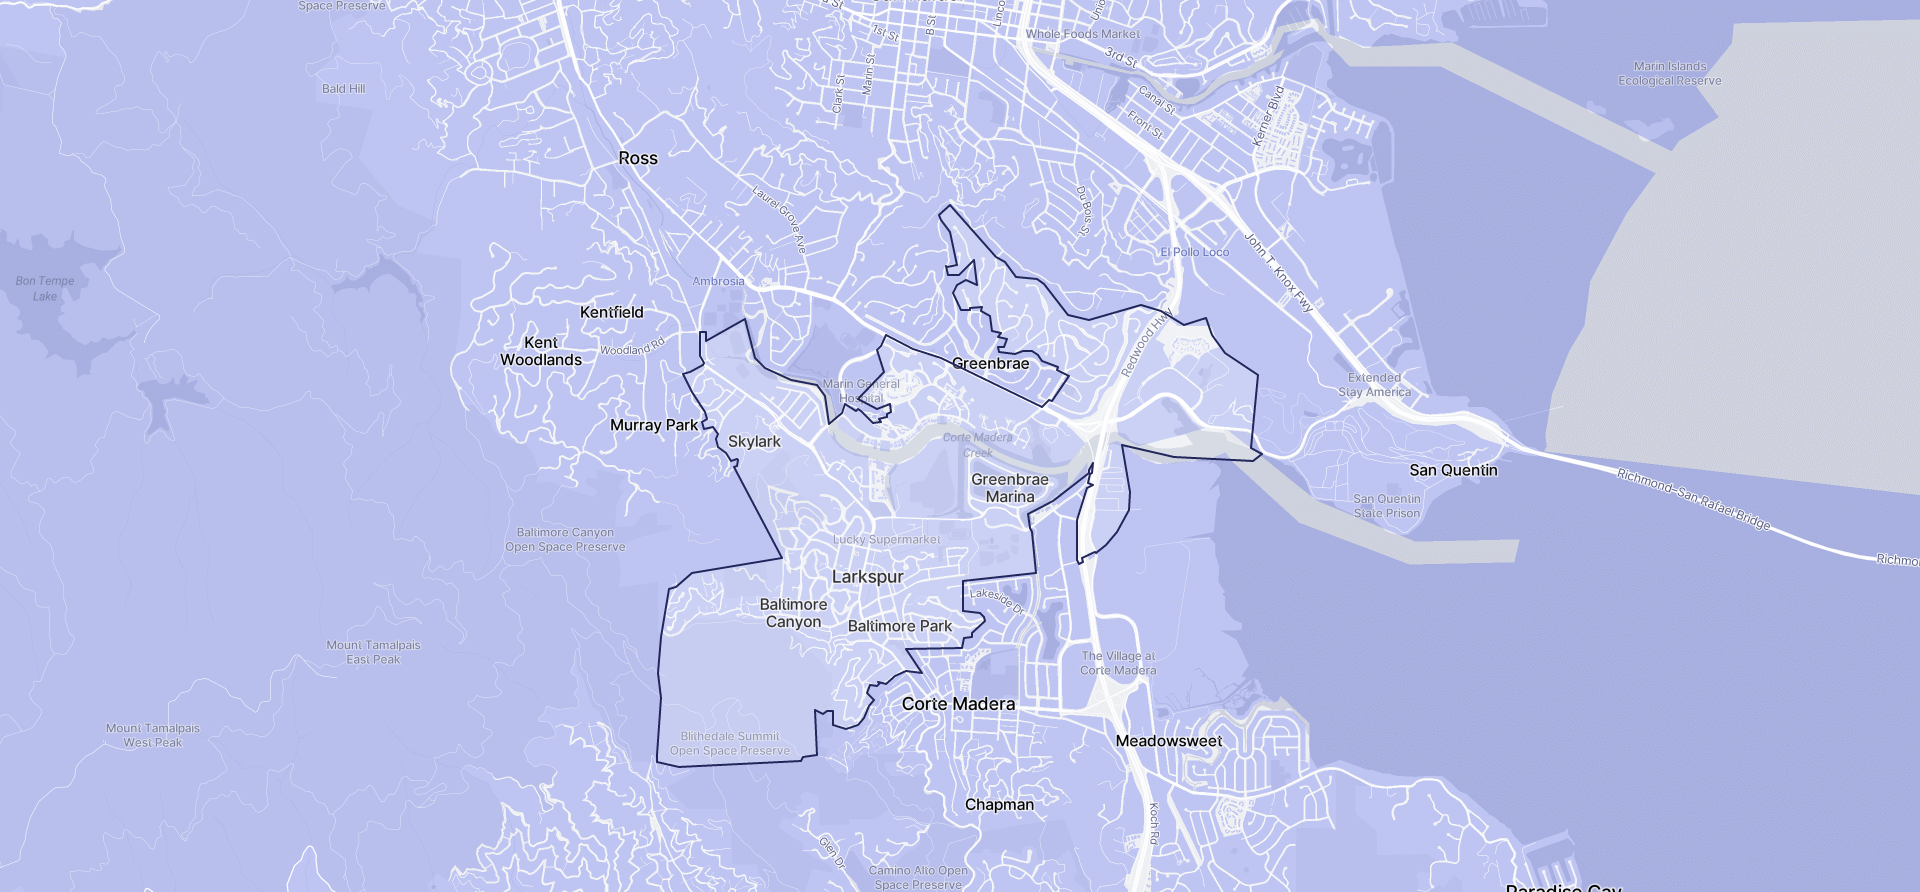 Image of Larkspur boundaries on a map.